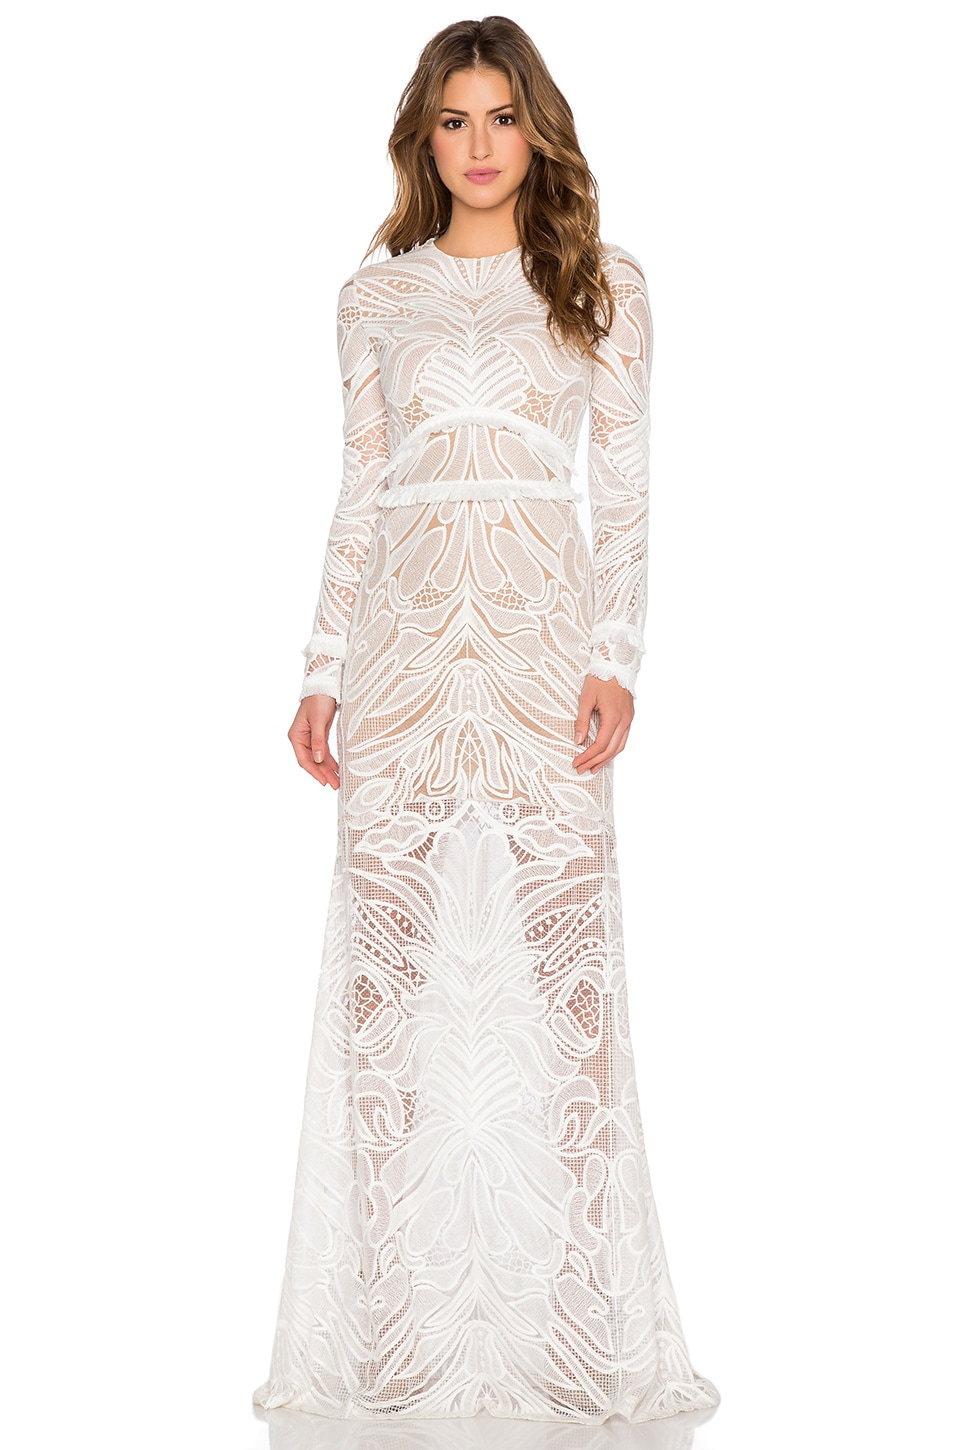 Alexis Vice Lace Maxi Dress in White Lace | REVOLVE